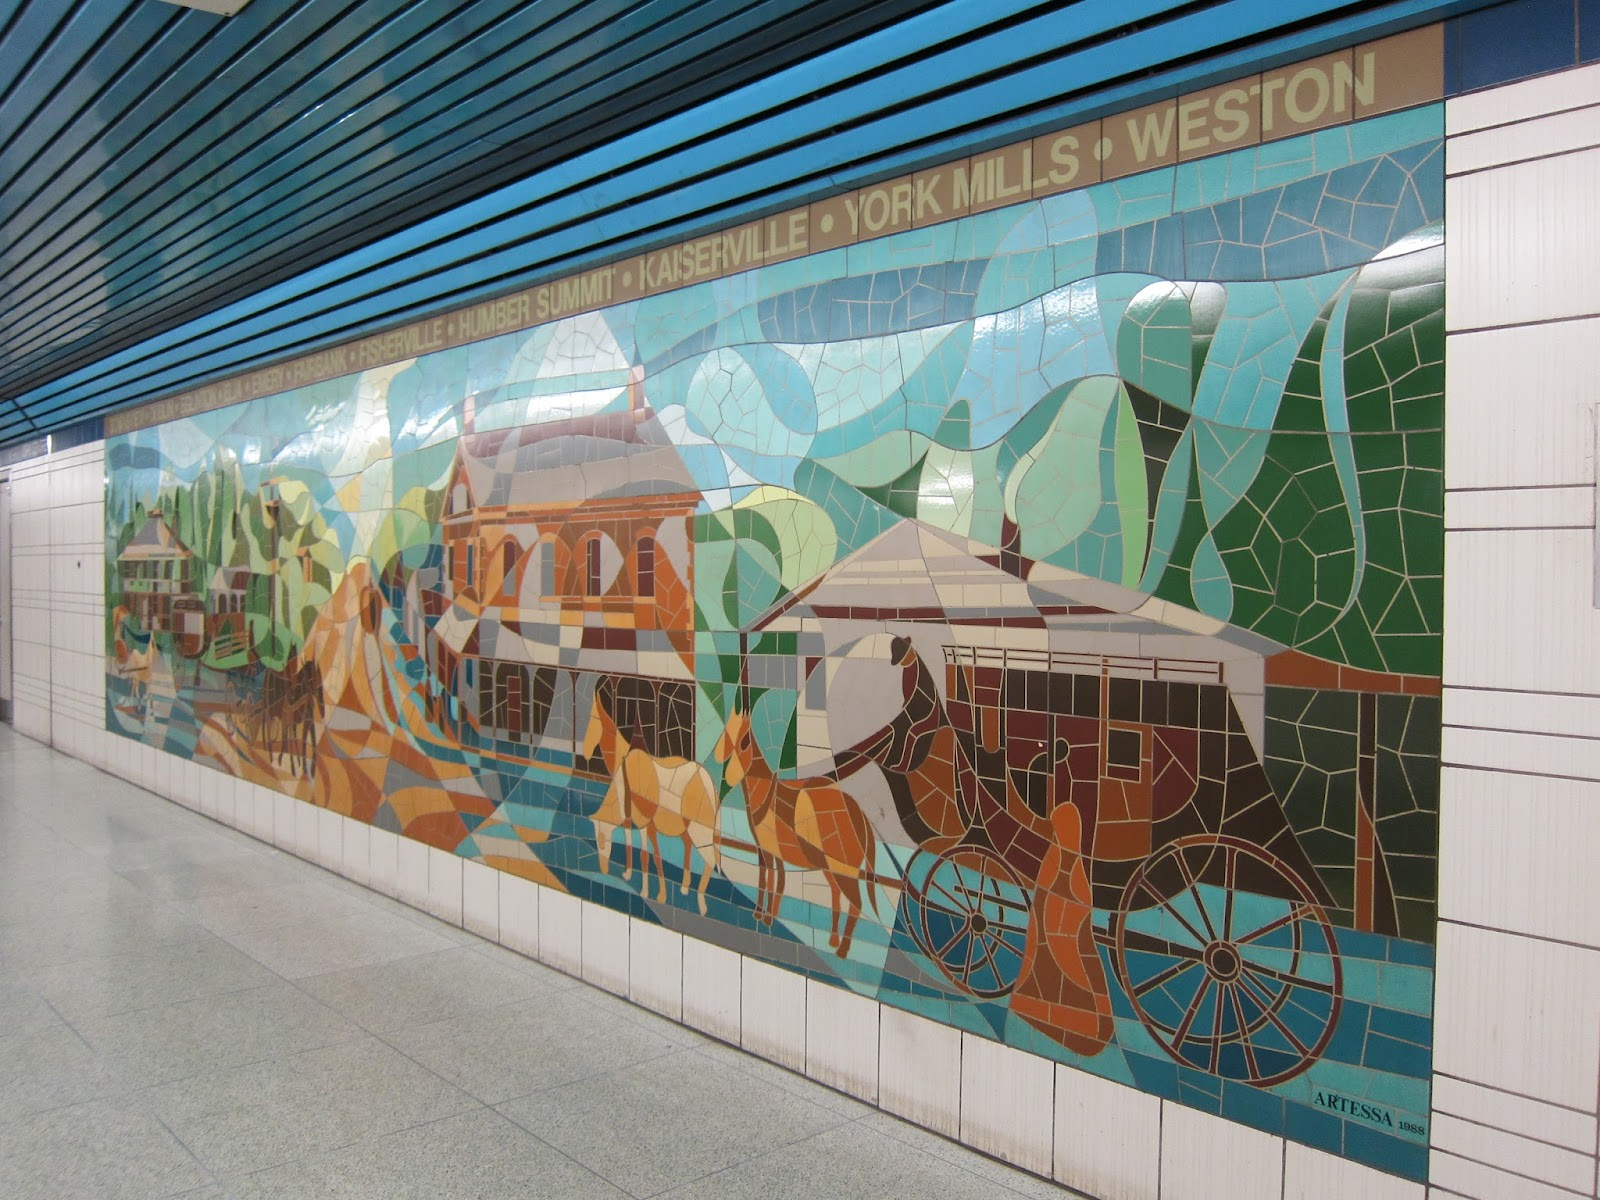 Mural at North York Centre station by Susana and Nicholas Graven, southbound platform.